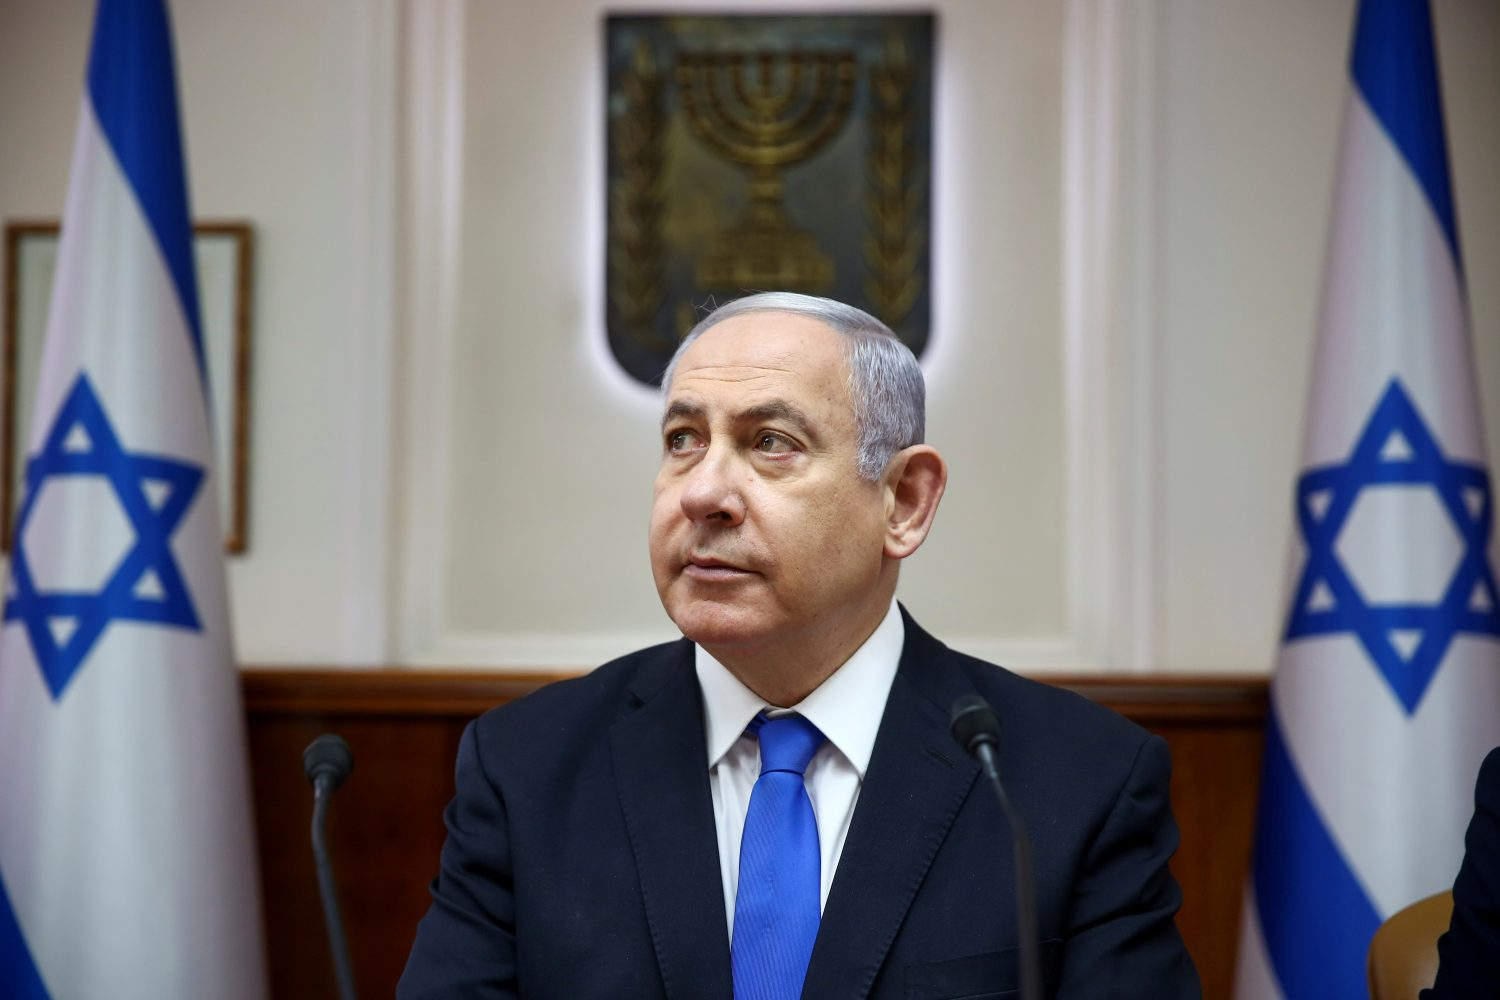 FILE PHOTO: Israeli Prime Minister Benjamin Netanyahu attends the weekly cabinet meeting in Jerusalem, June 30, 2019. Oded Balilty/Pool via REUTERS/File Photo